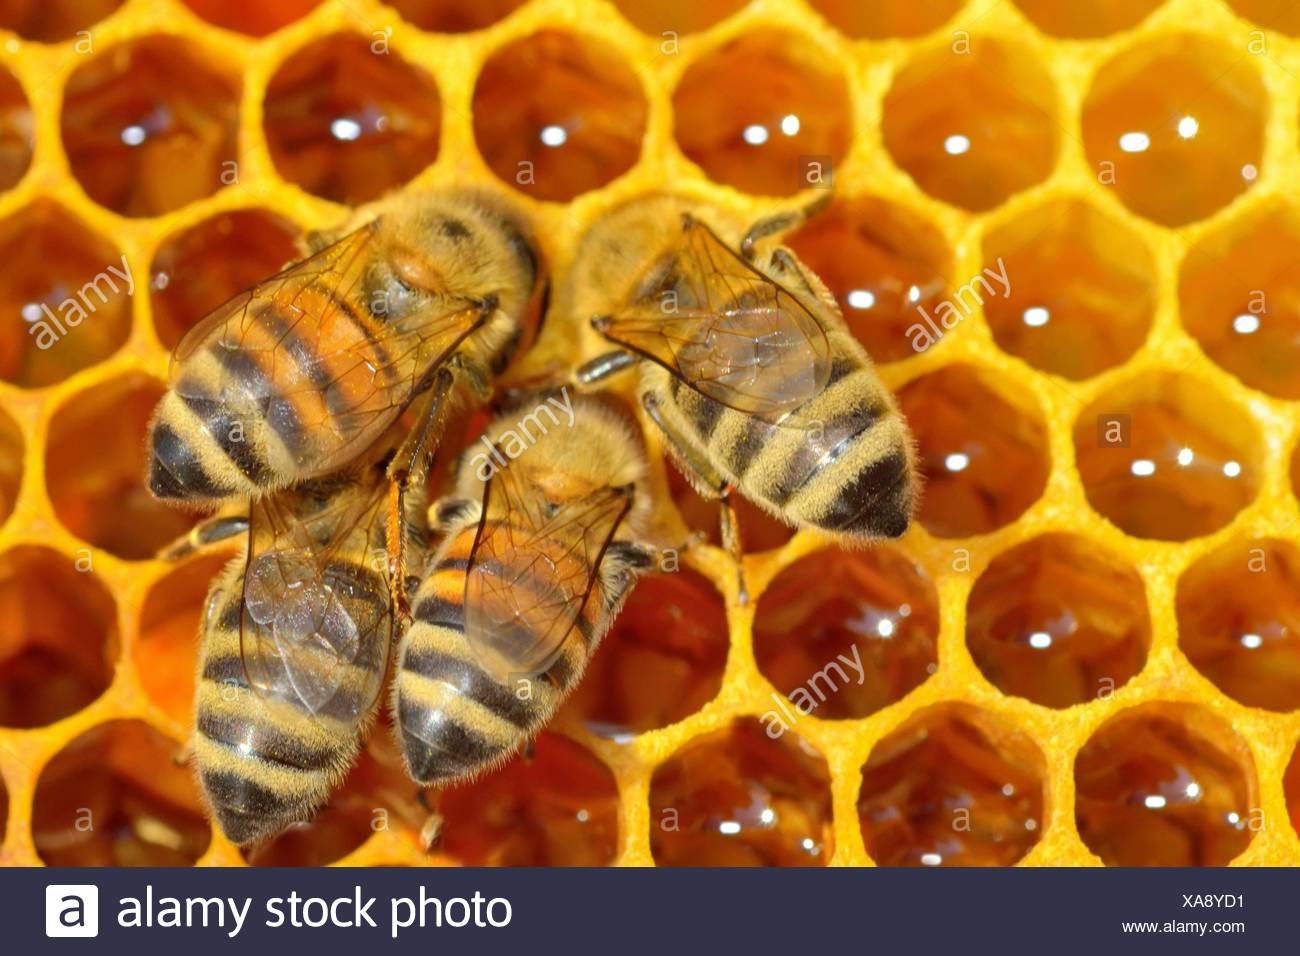 Close up view of the working bees on honey cells. Stock Photo